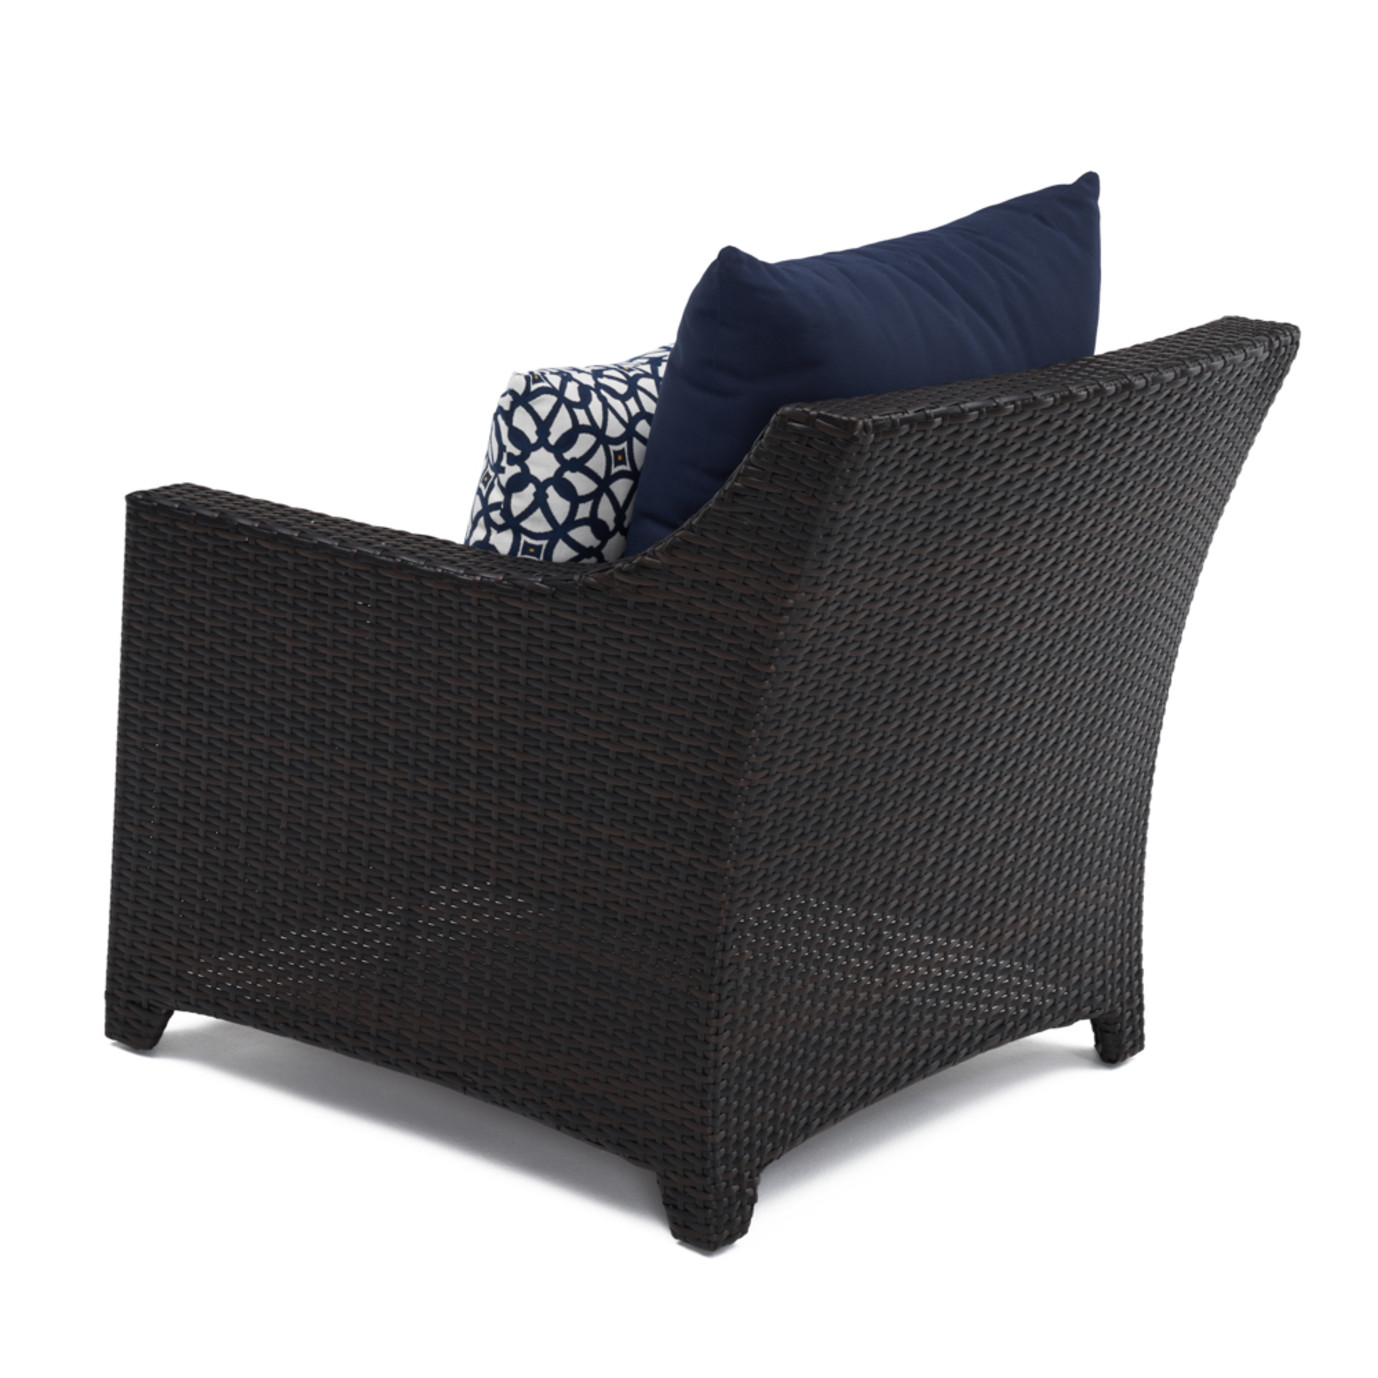 Deco™ 8pc Sofa Set with Furniture Covers - Navy Blue